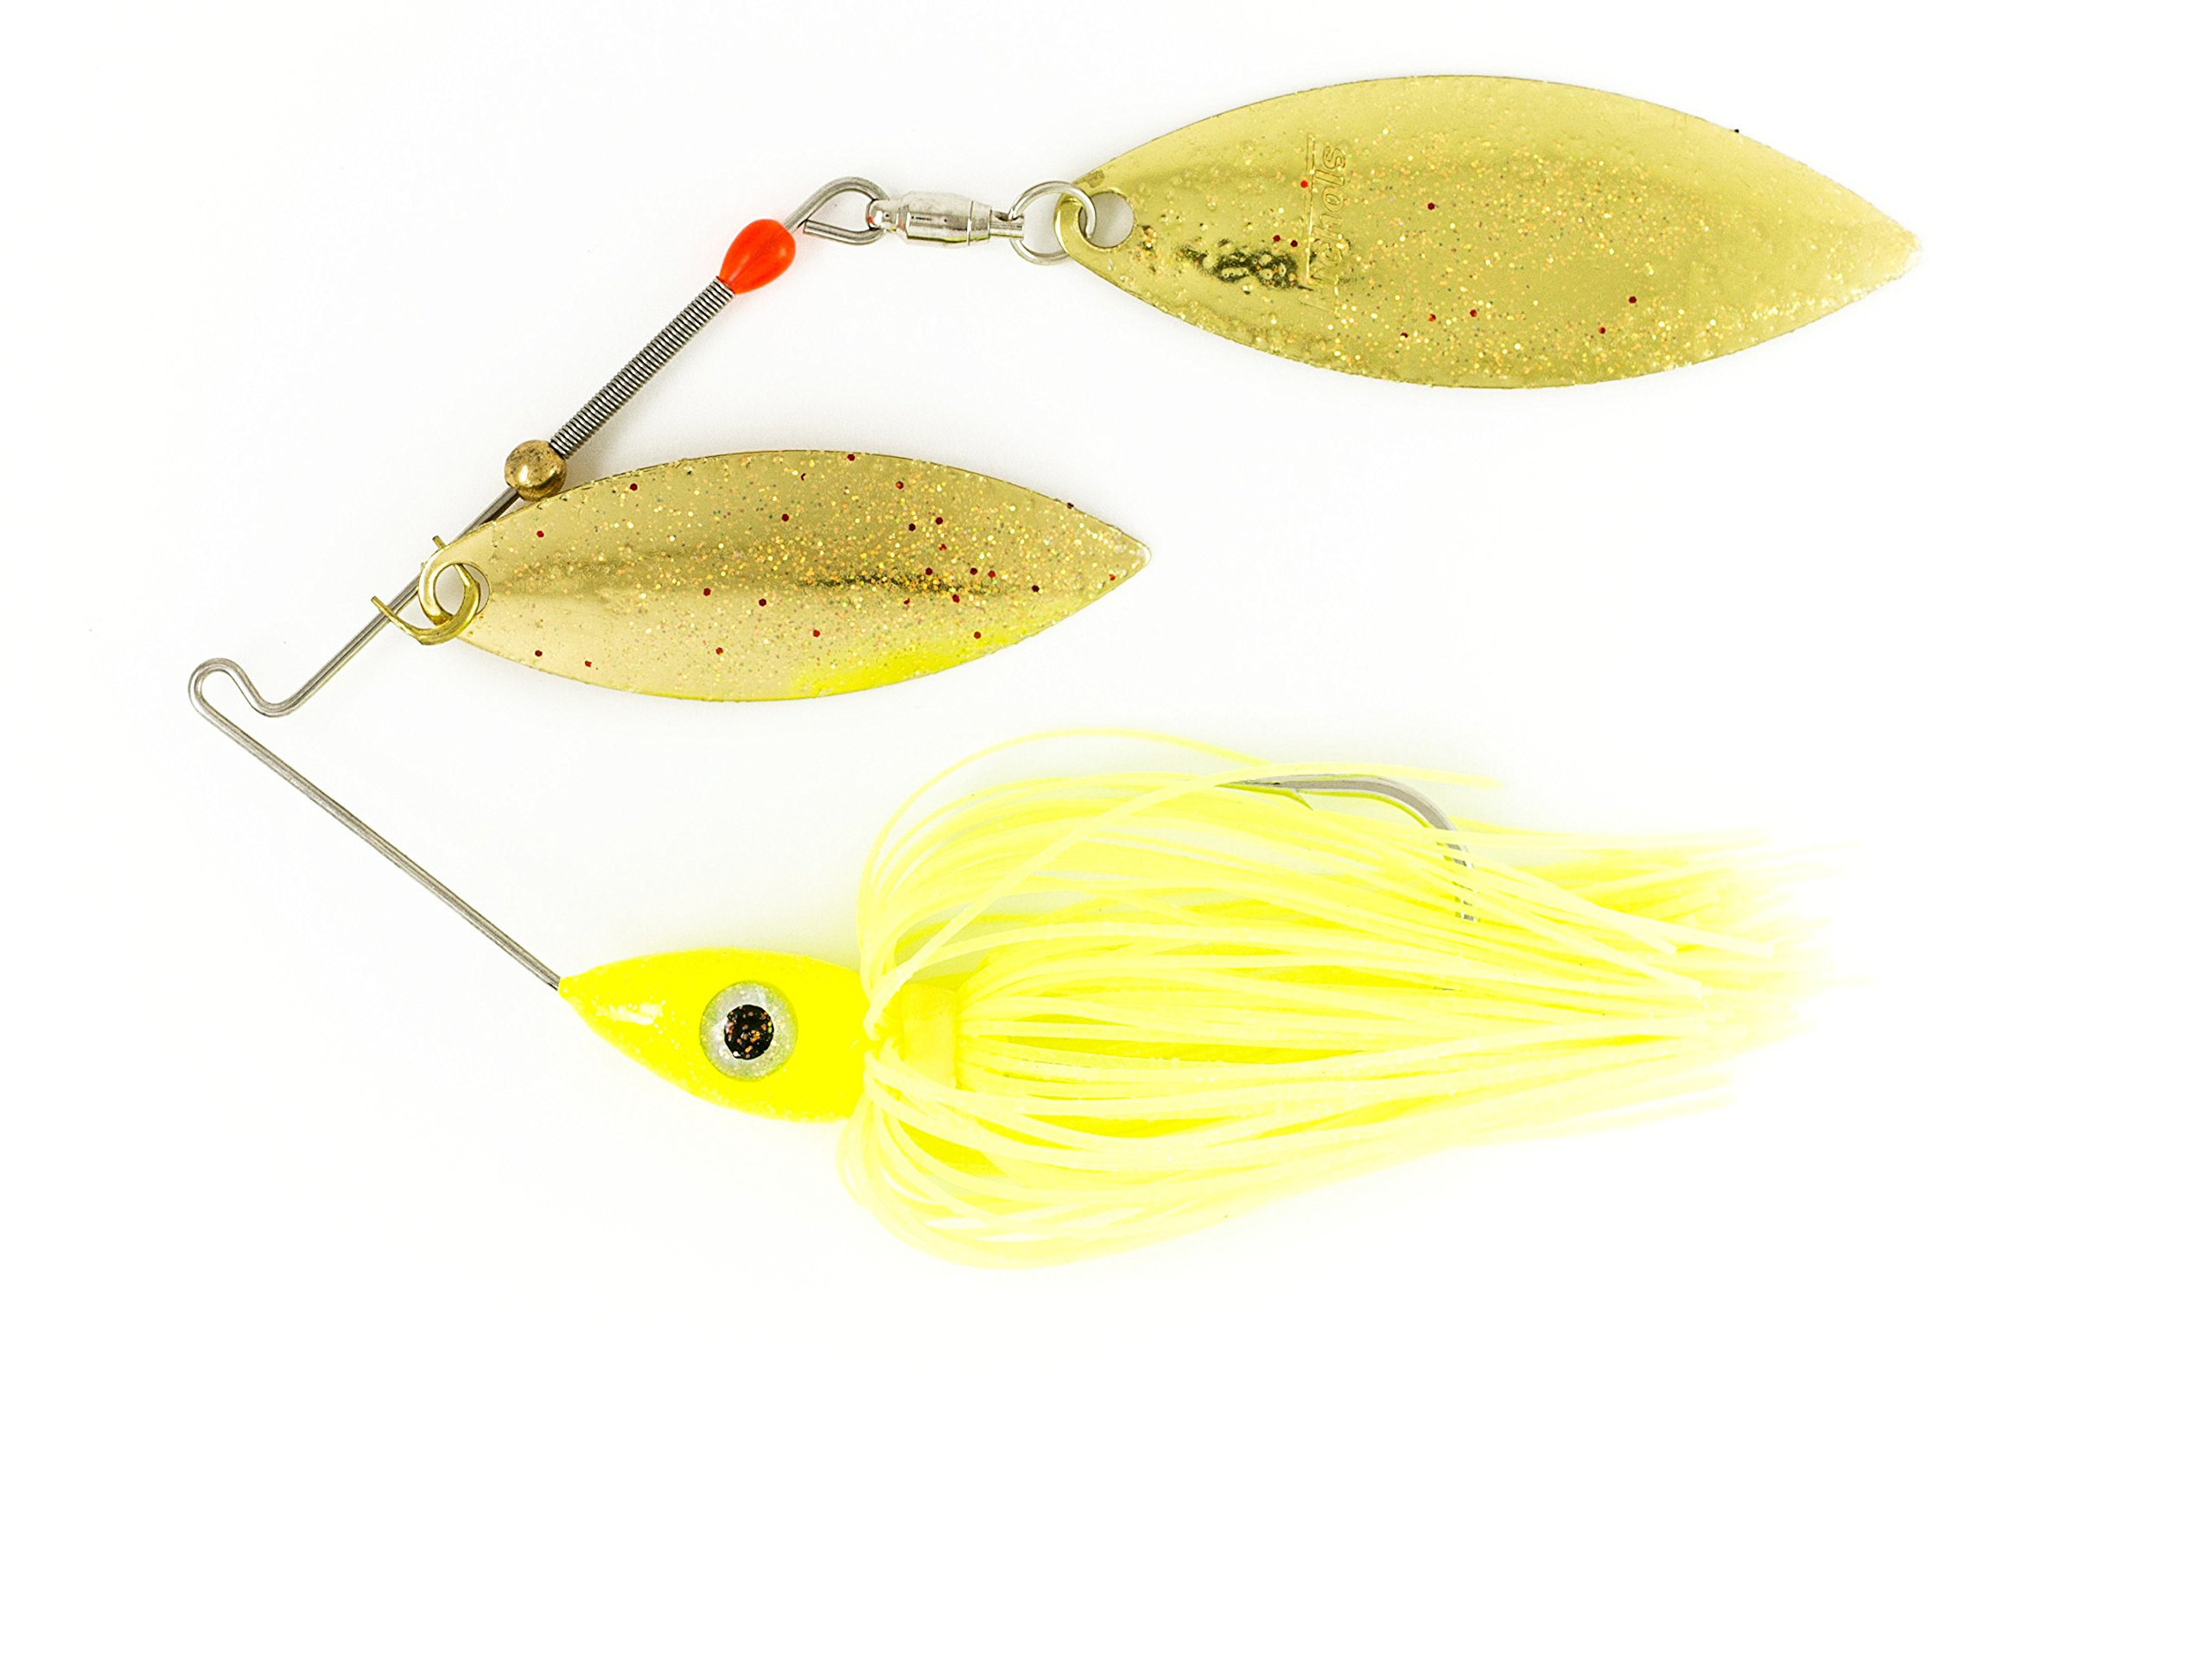 Nichols Lures Pulsator Metal Flake Double Willow Spinnerbait, Chartreuse/Gold, 3/8-Ounce by Nichols Lures